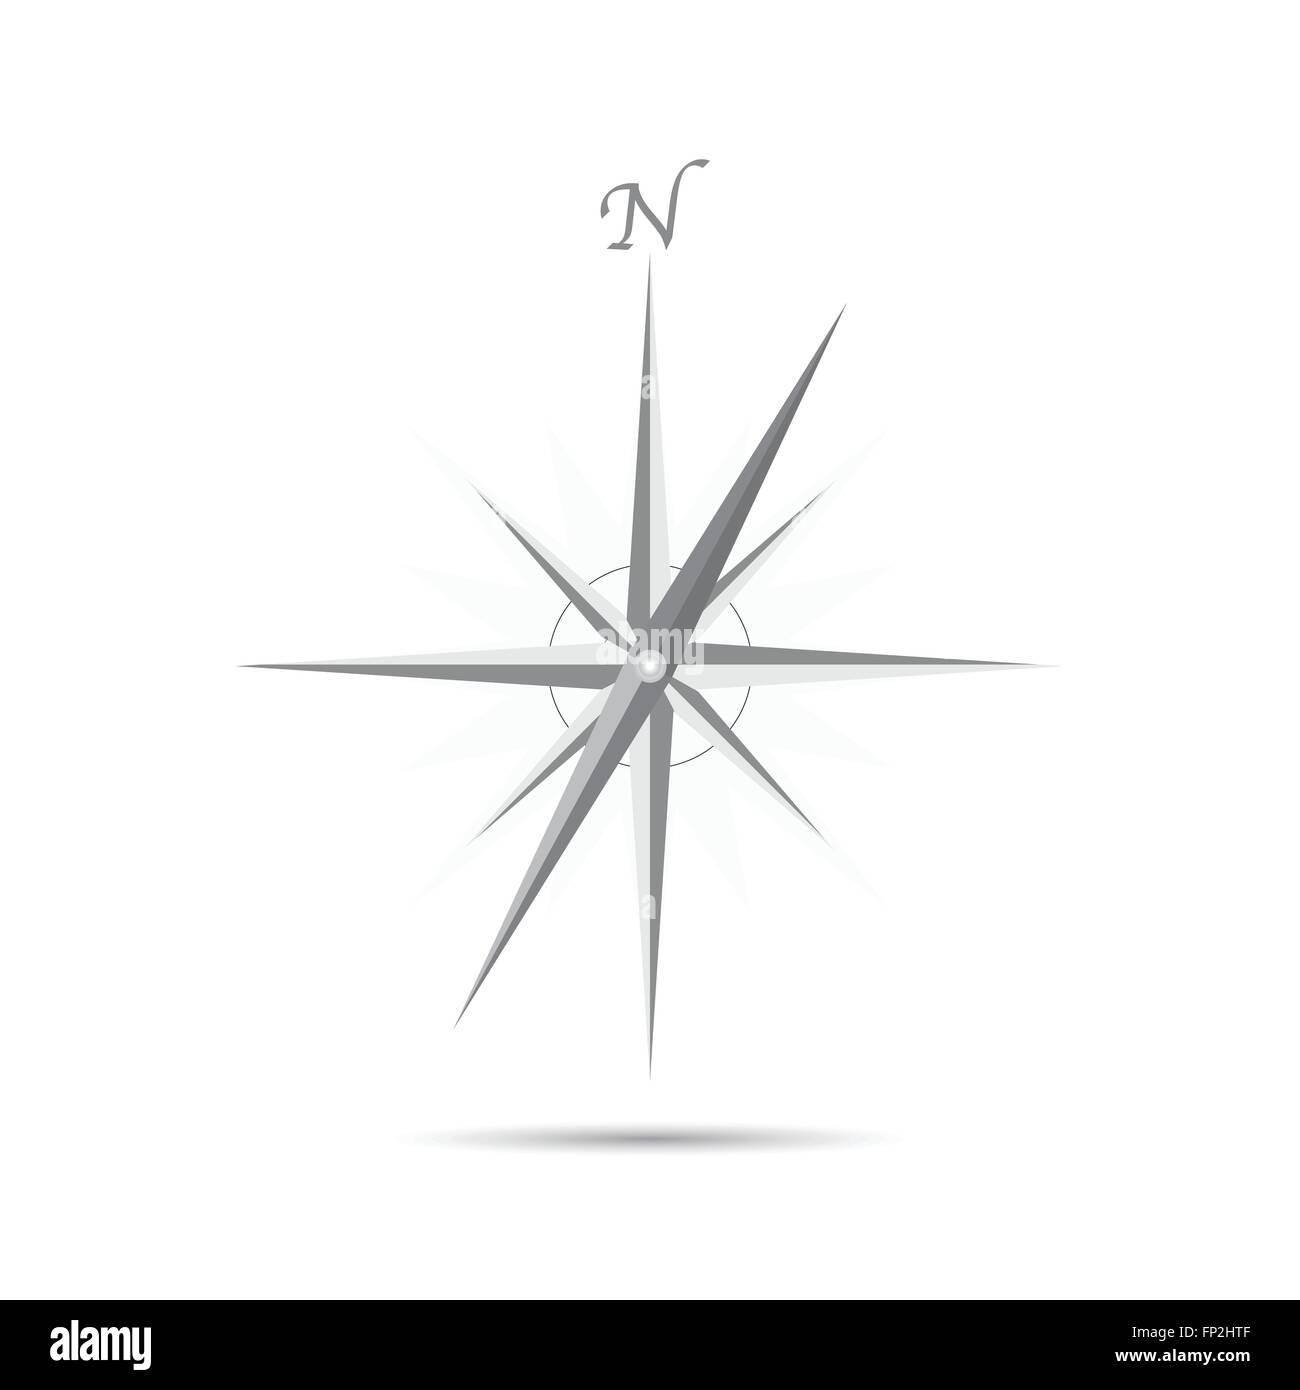 Illustration of an abstract compass design isolated on a white background. - Stock Vector